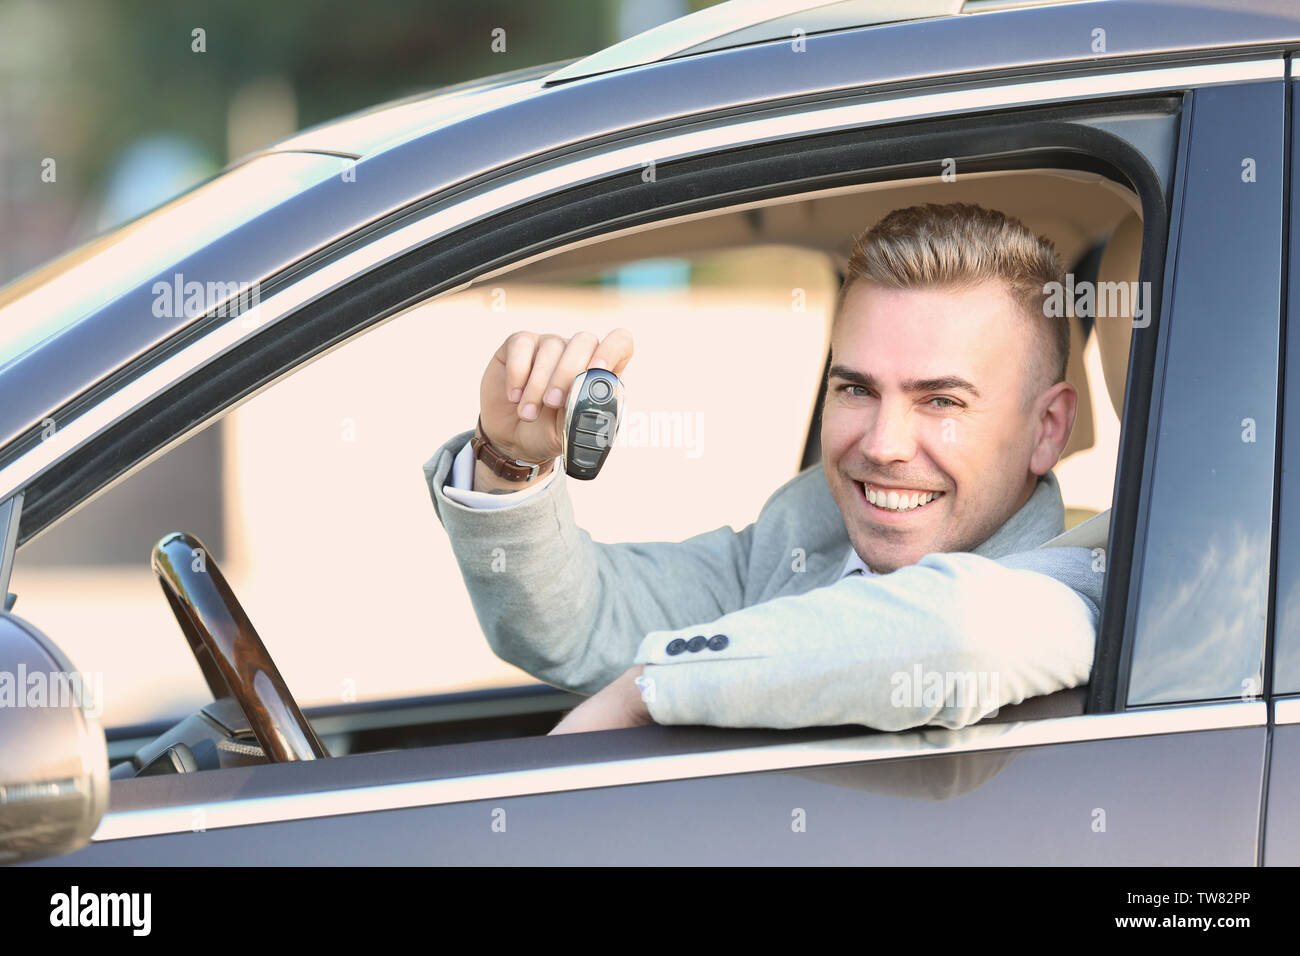 Man in formal wear holding key when sitting on driver's seat of car - Stock Image